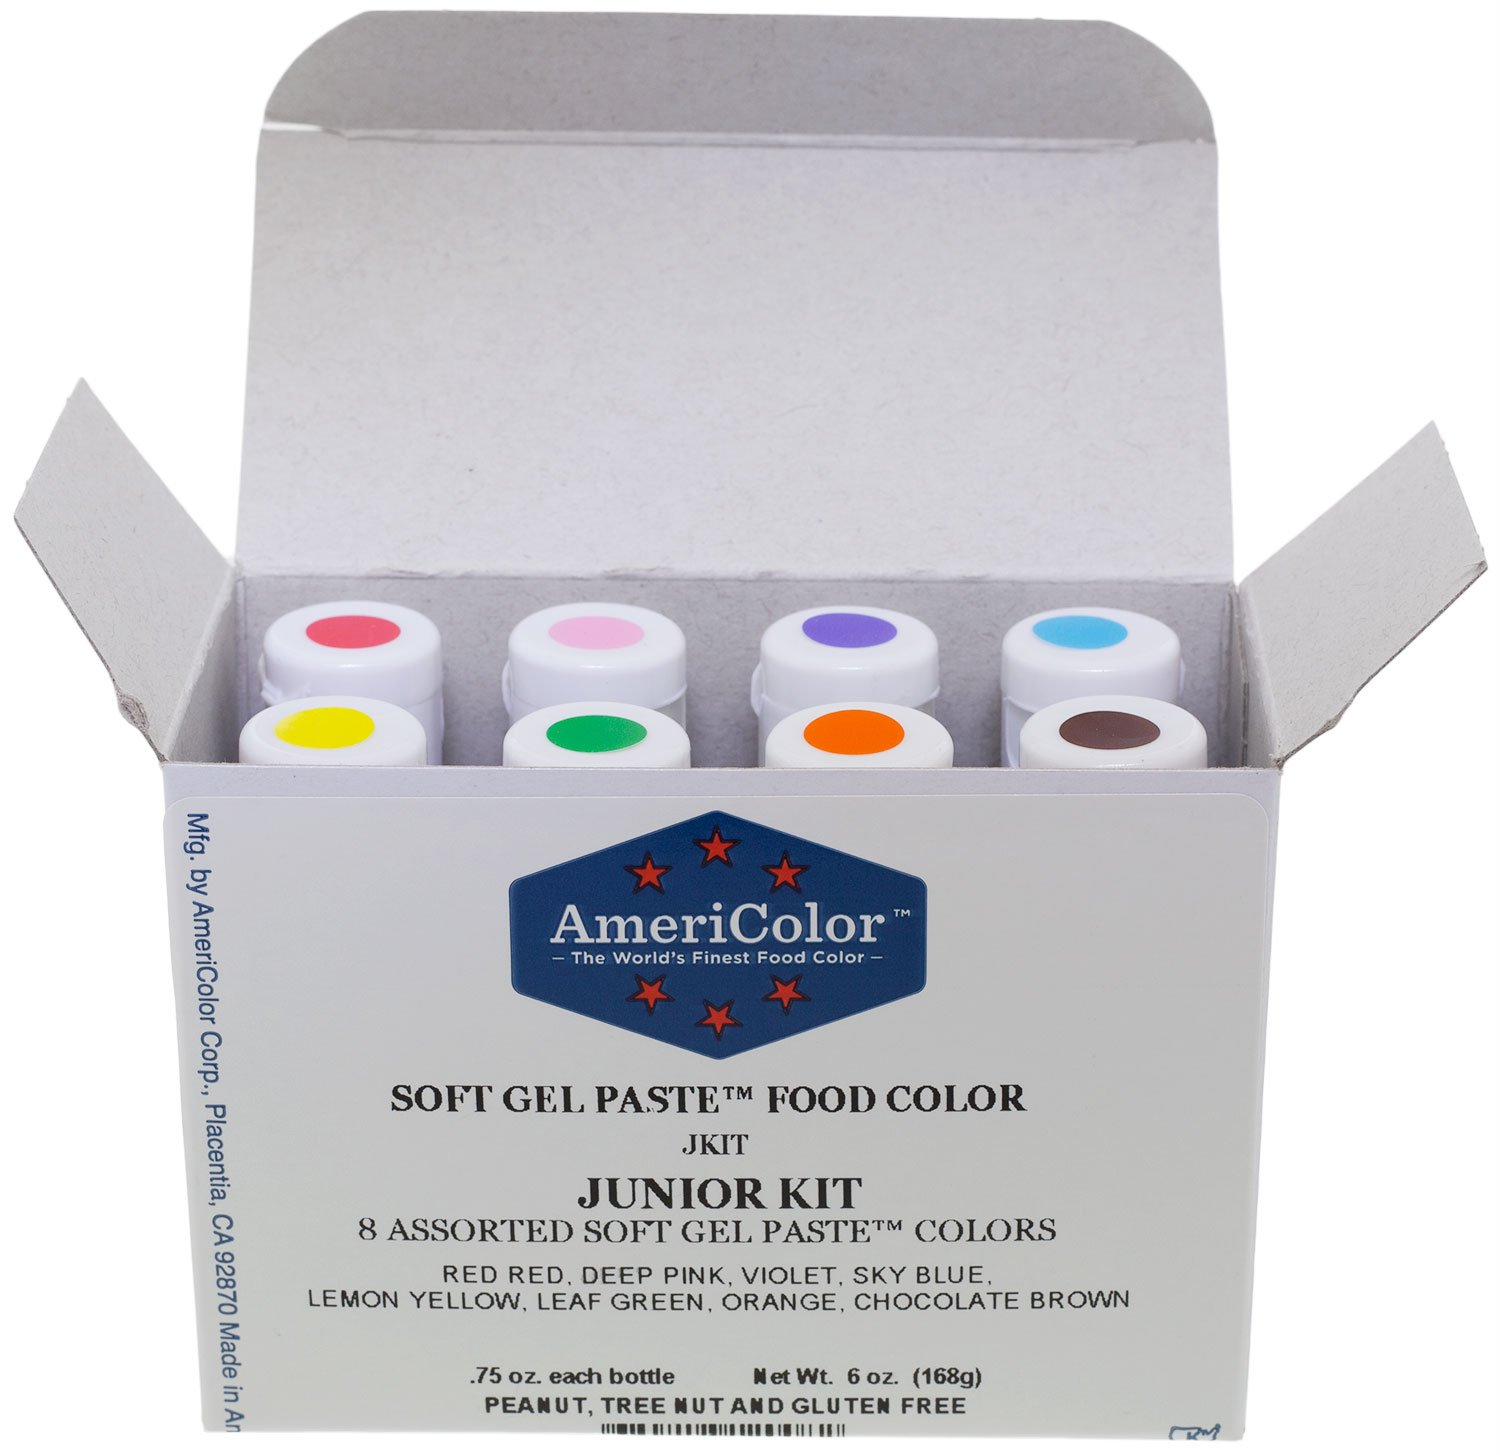 Amazon.com: Food Coloring AmeriColor - Bright White Soft Gel Paste ...